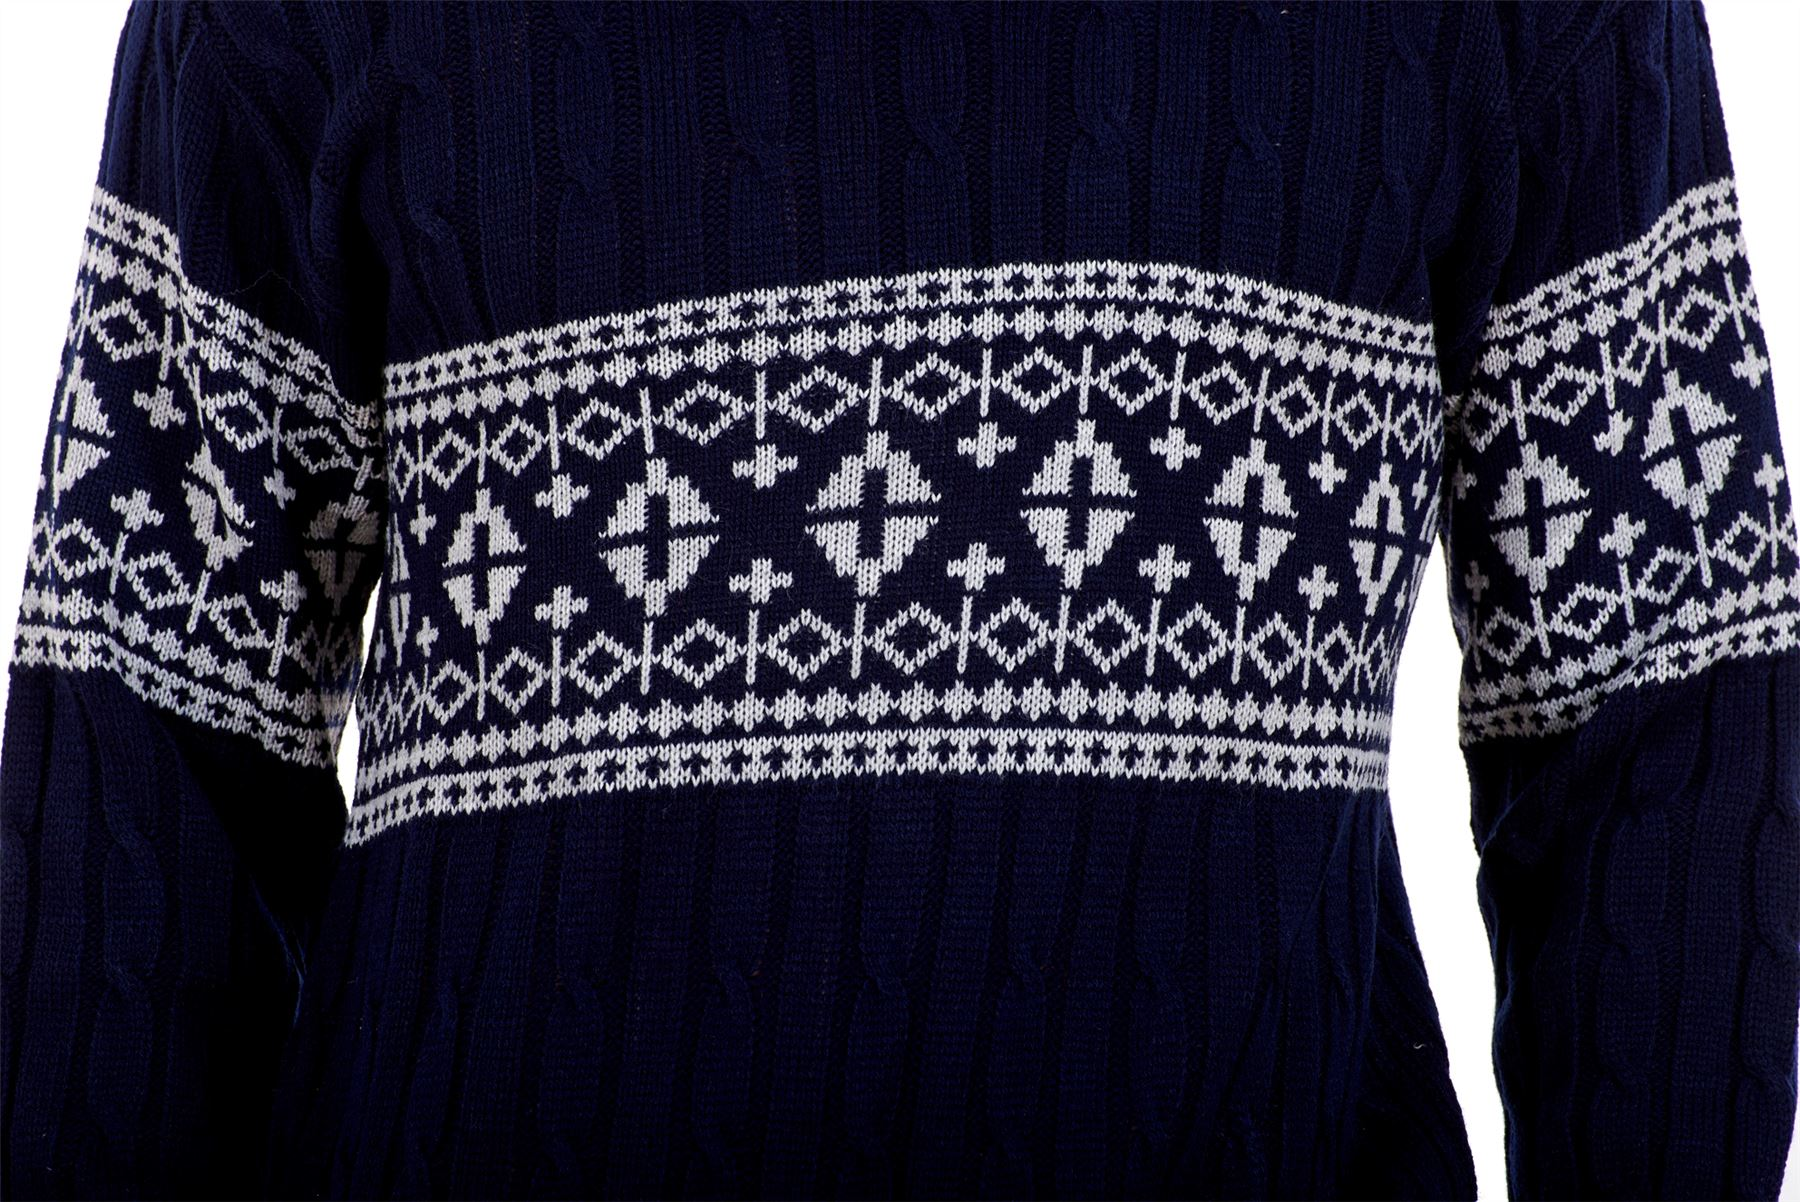 Mens-New-Cable-Knit-Jacquard-Long-Sleeve-Pullover-Jumper-Sweater-S-to-XL thumbnail 20